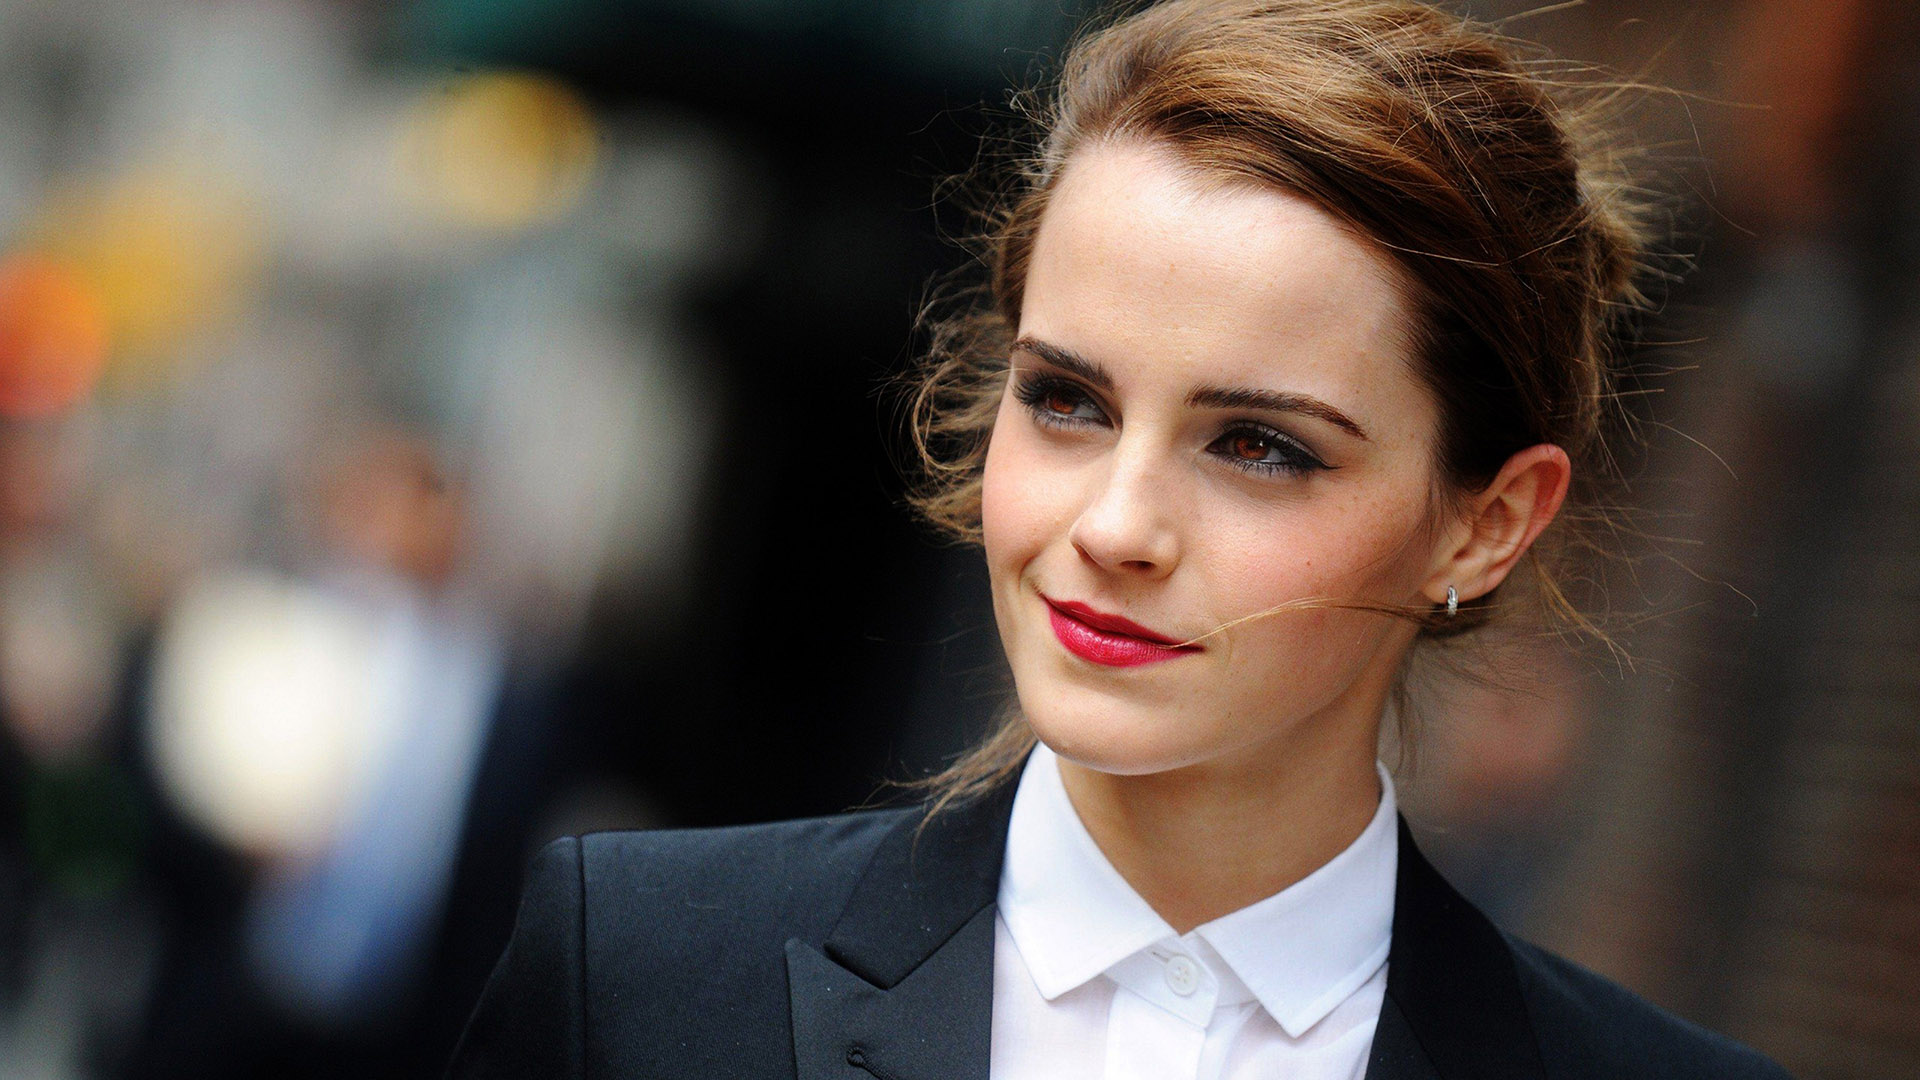 Free Download Emma Watson Actress Smile Red Lips Hd Background Wallpaper 1920x1080 For Your Desktop Mobile Tablet Explore 26 Hollywood Actress Full Hd Wallpaper Hollywood Actress Full Hd Wallpaper